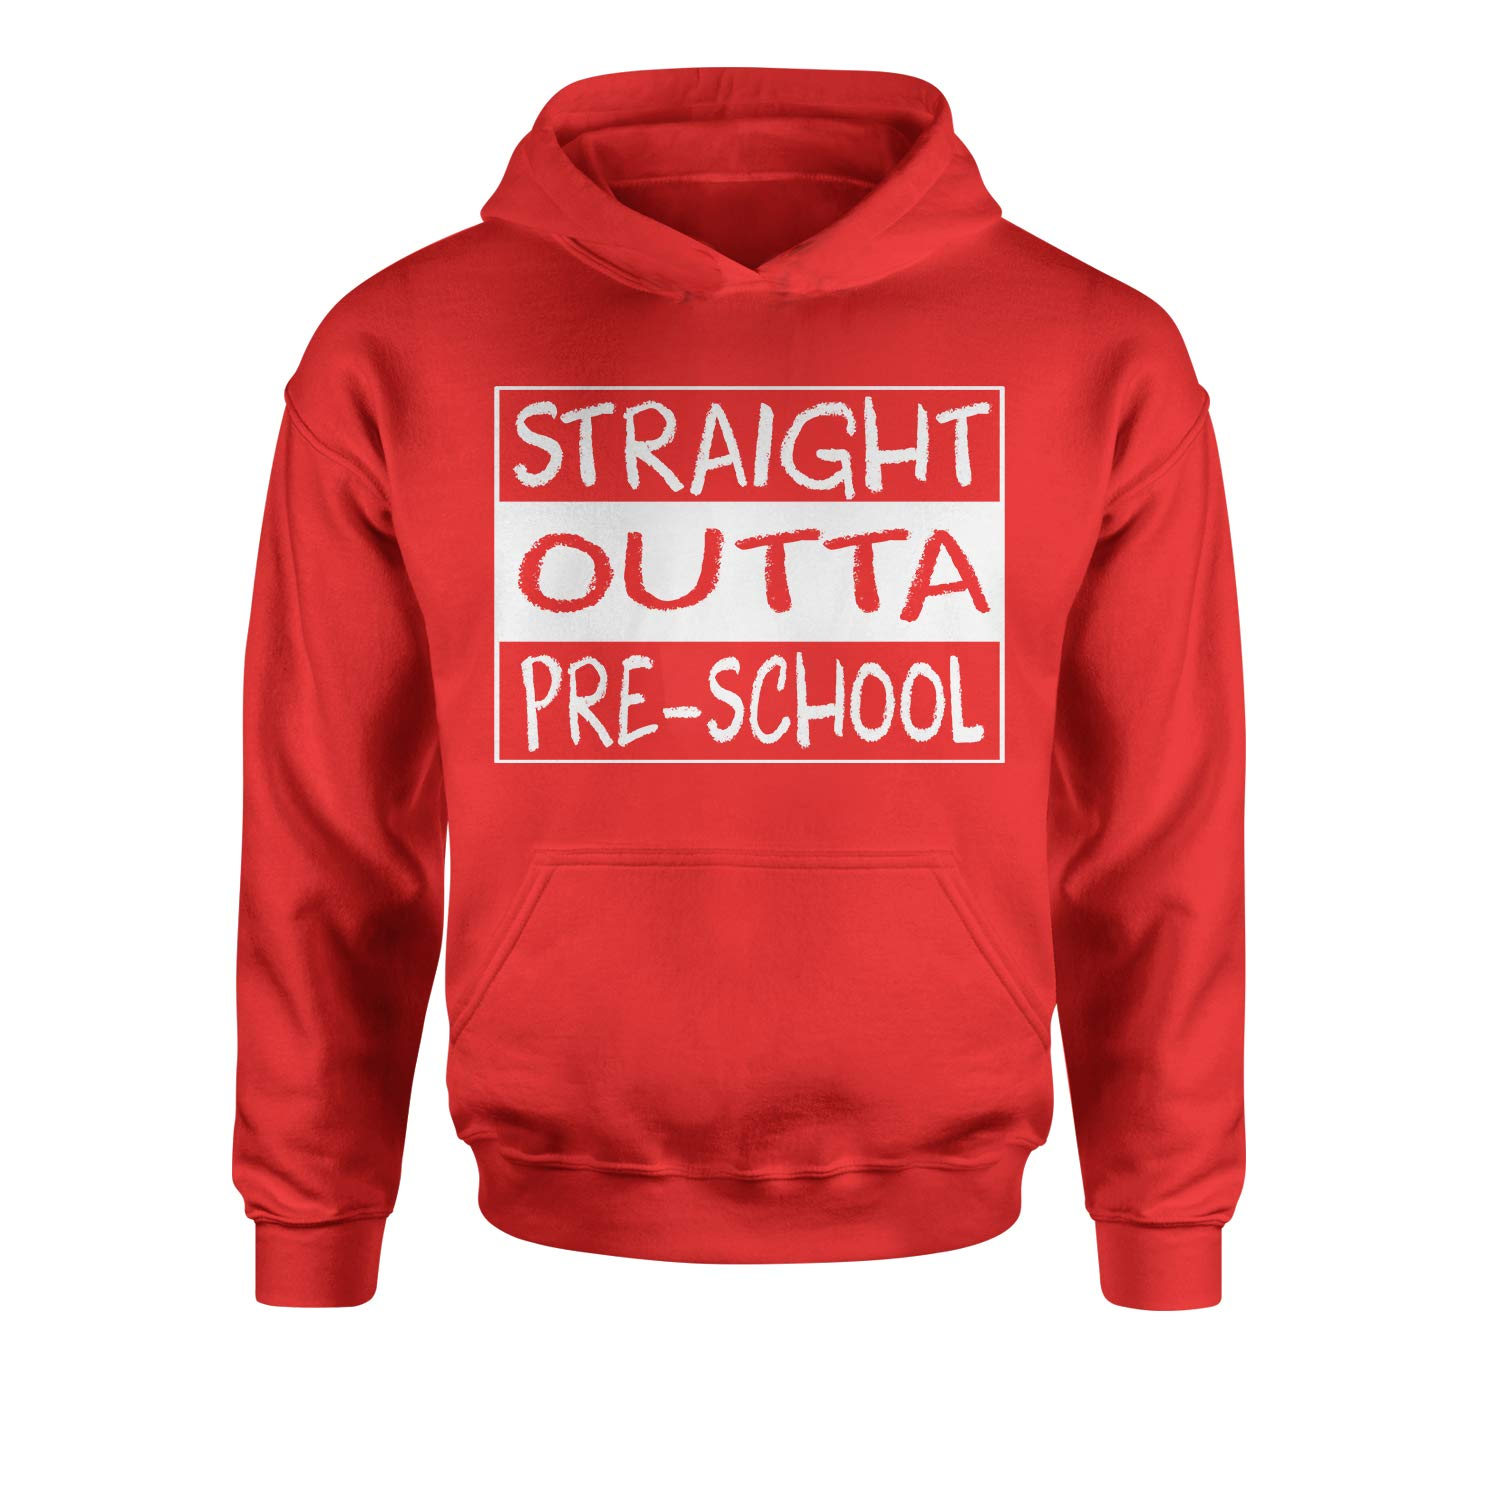 Expression Tees Straight Outta Pre-School Youth-Sized Hoodie